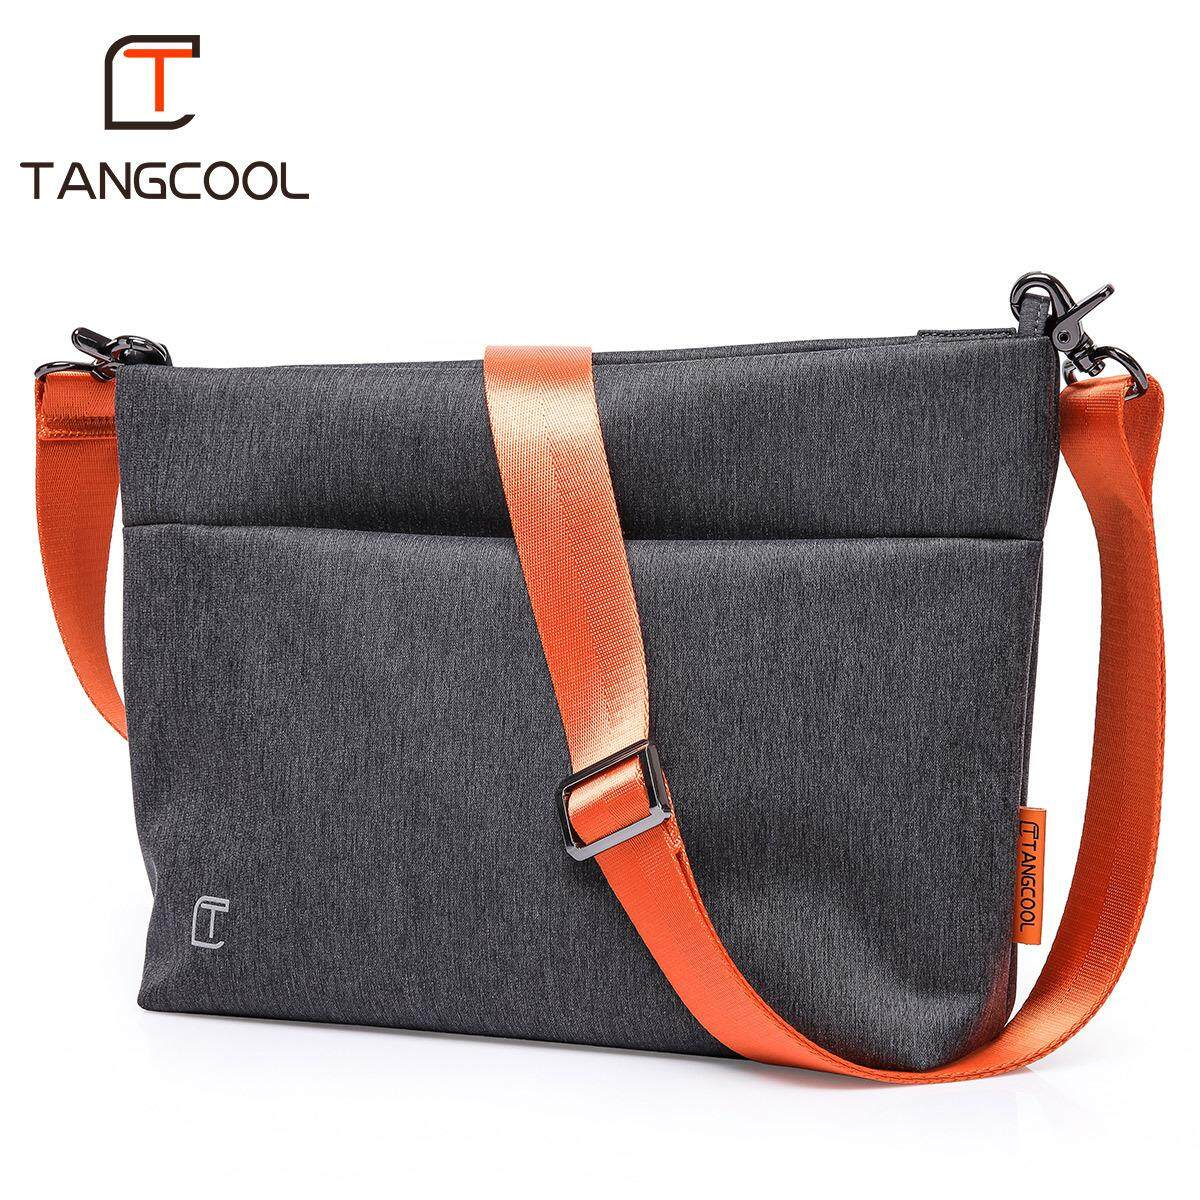 13724aa0eff5 Shoulder bag men fashion tide brand Messenger bag student leisure sports  backpack men s shoulder bag small